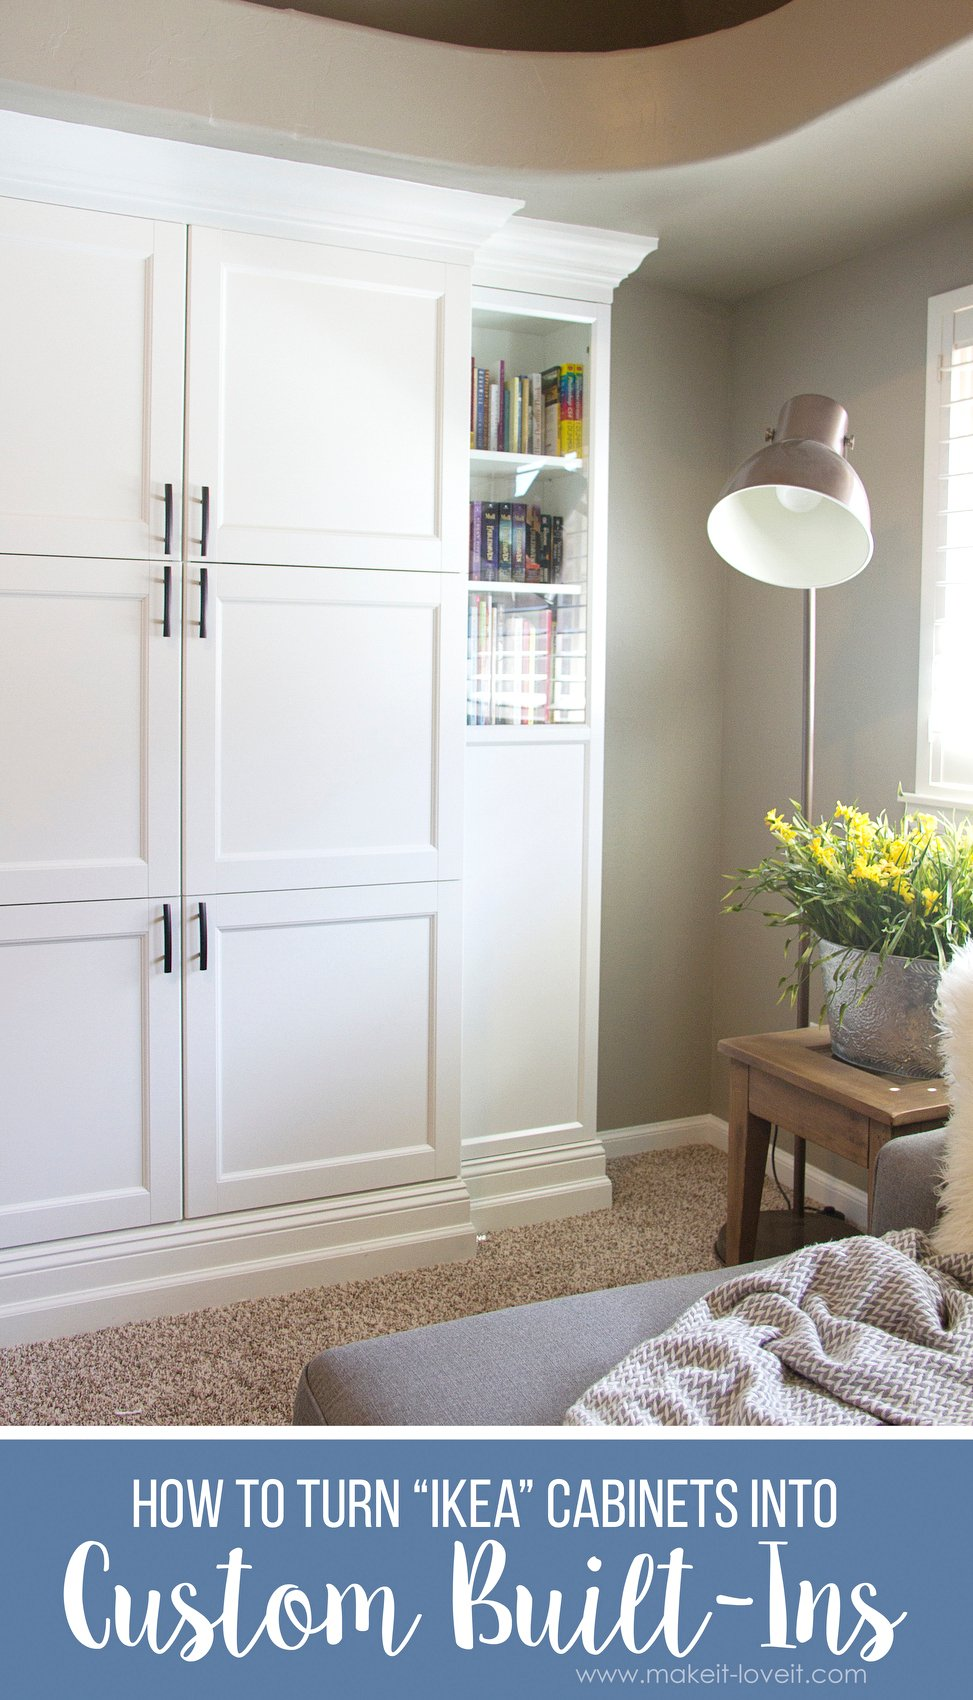 How to Turn Ikea Bookshelves into Custom Built-Ins | via www.makeit-loveit.com